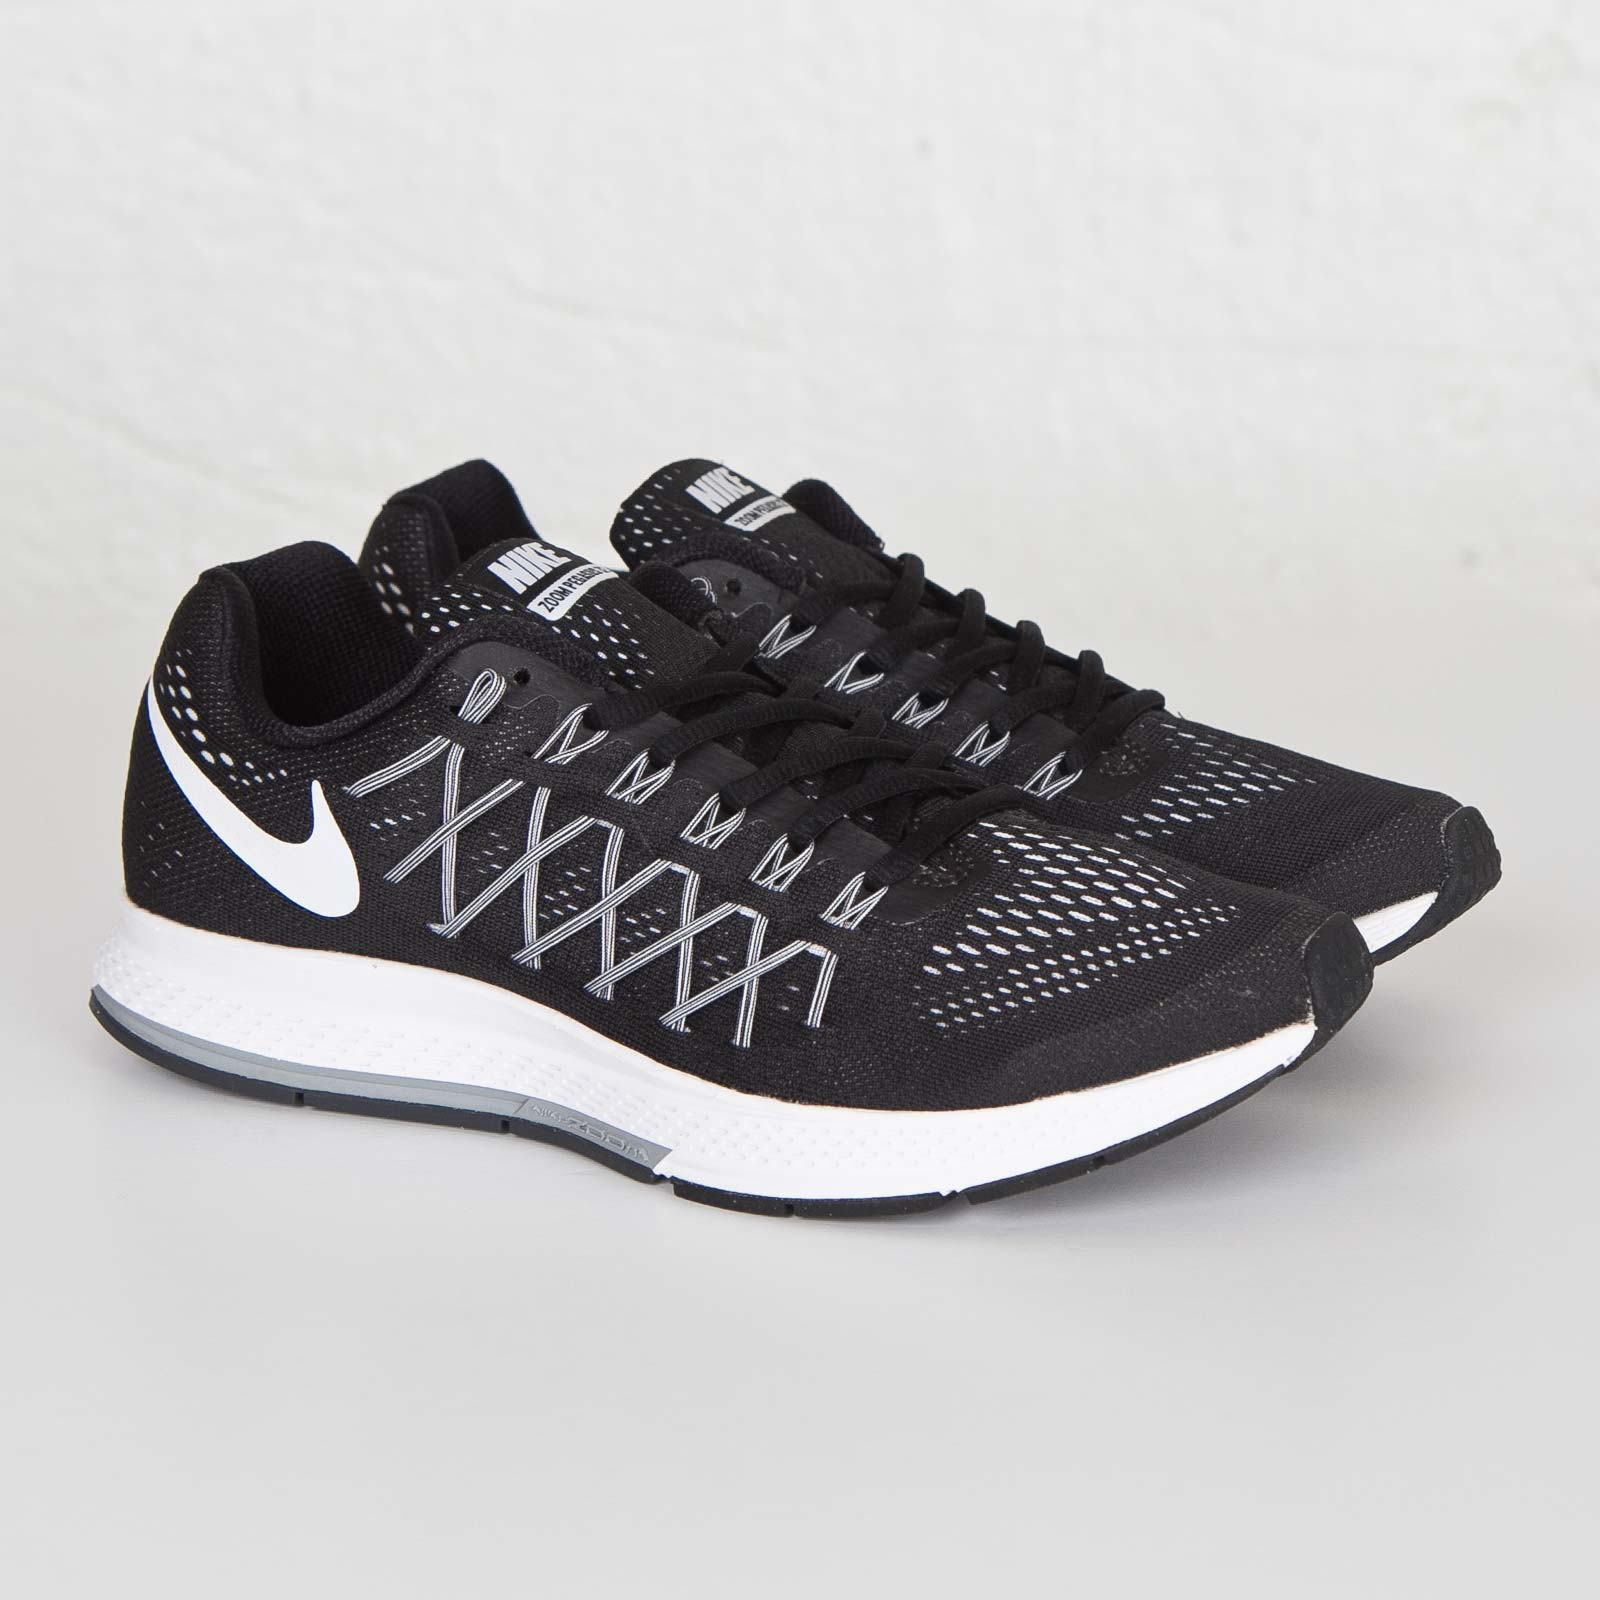 buy buy best cheap sale Nike Air Zoom Pegasus 32 - 749340-001 - Sneakersnstuff | sneakers ...